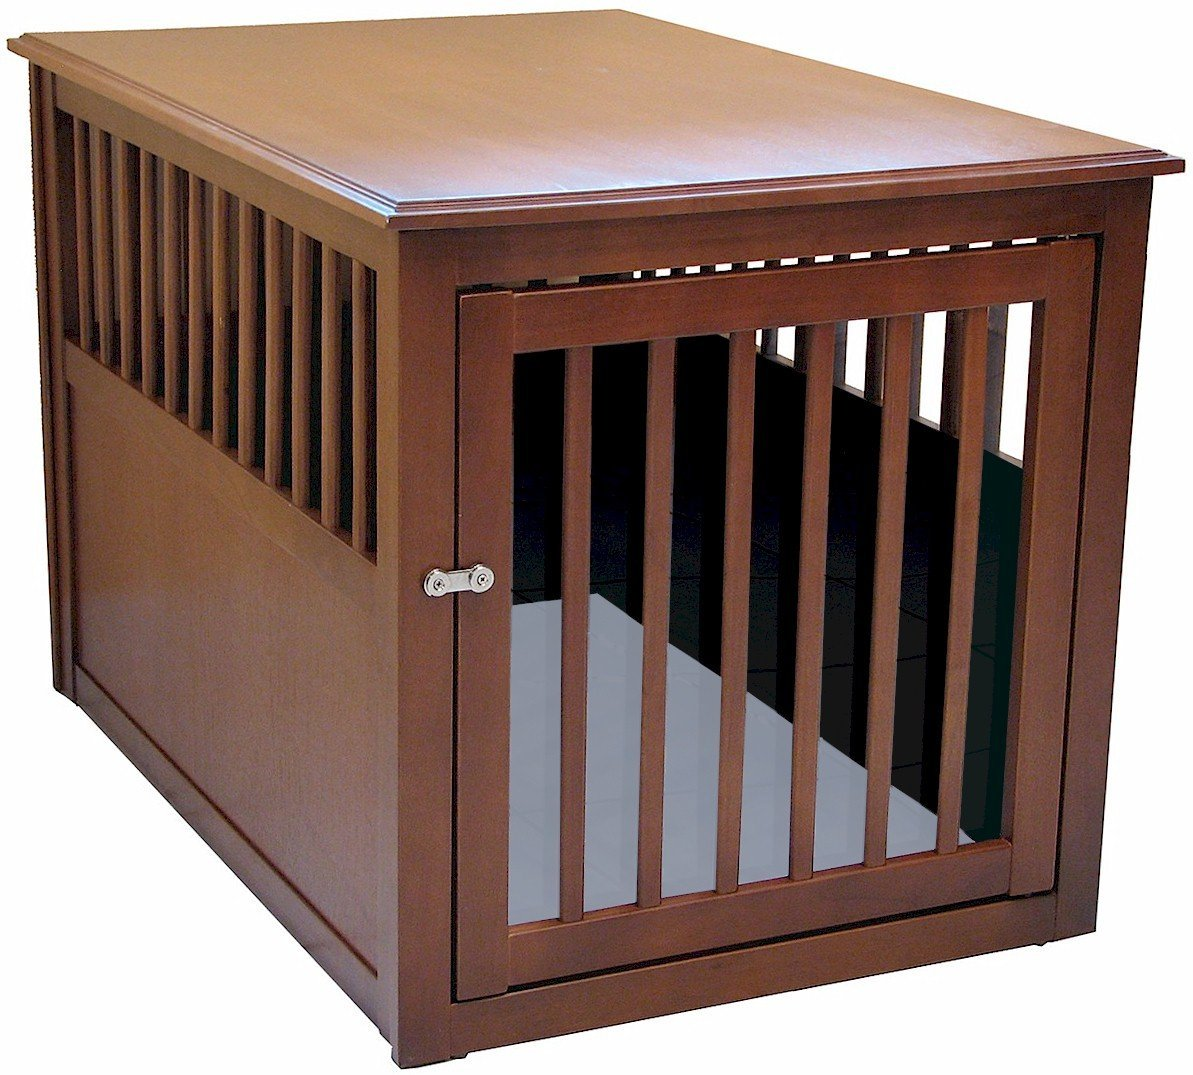 Amazon.com : Crown Pet Products Pet Crate Wood Dog Crate Furniture End  Table, Large Size With Mahogany Finish : Cat Houses And Condos : Pet  Supplies